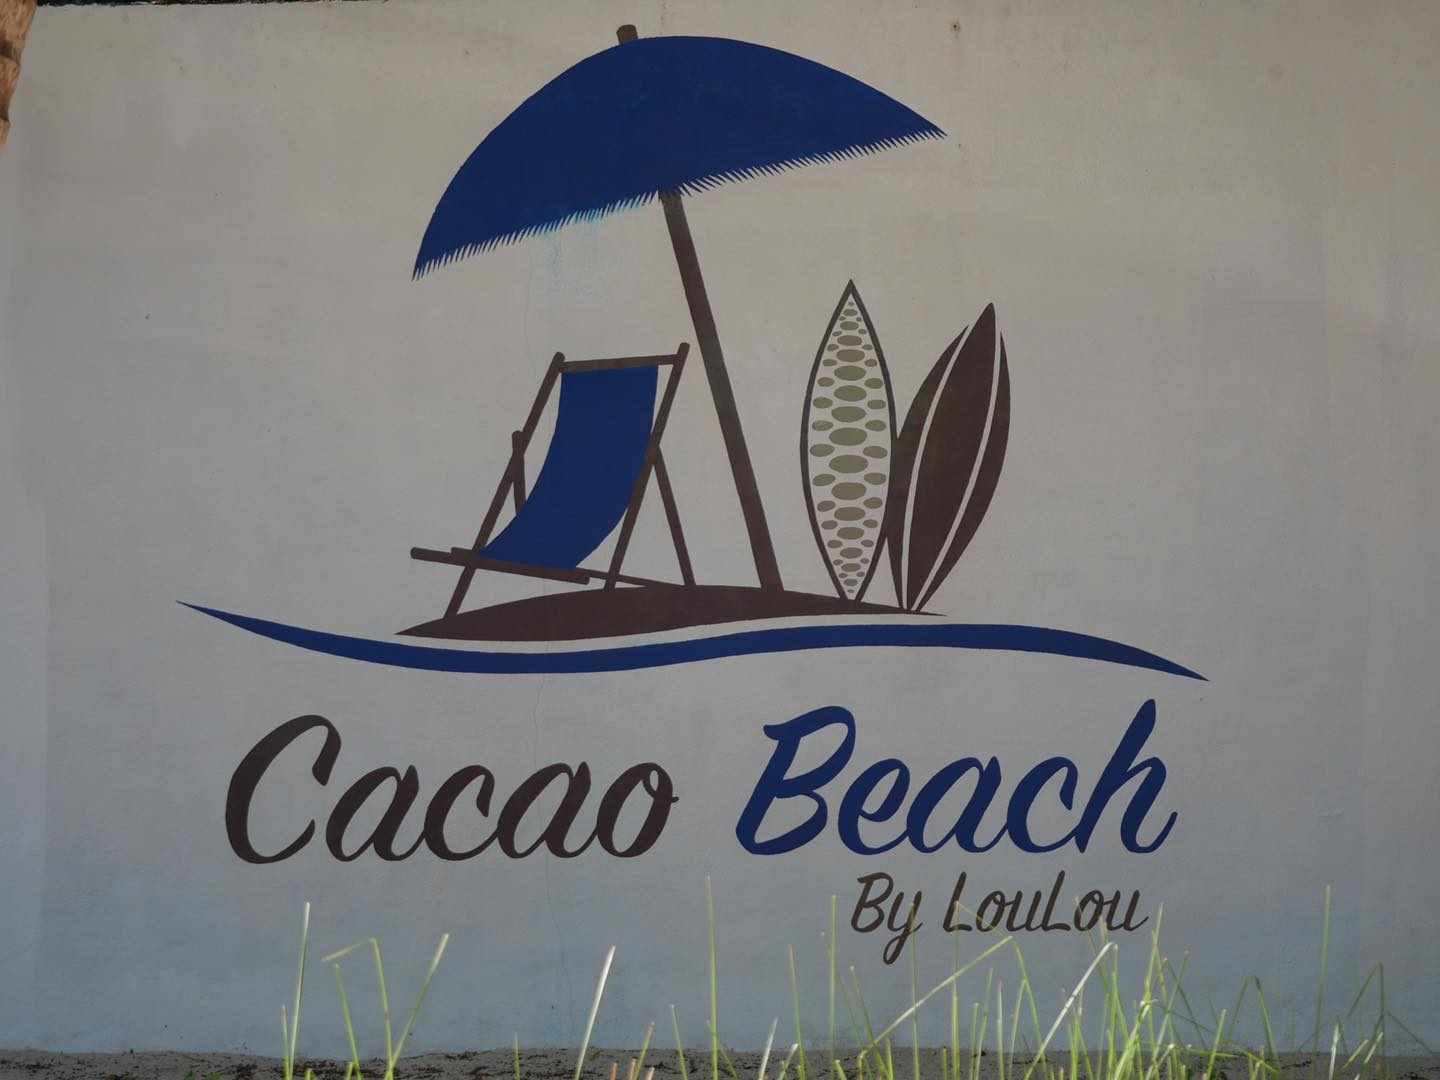 Restaurant Cacao Beach Andilana, by Loulou